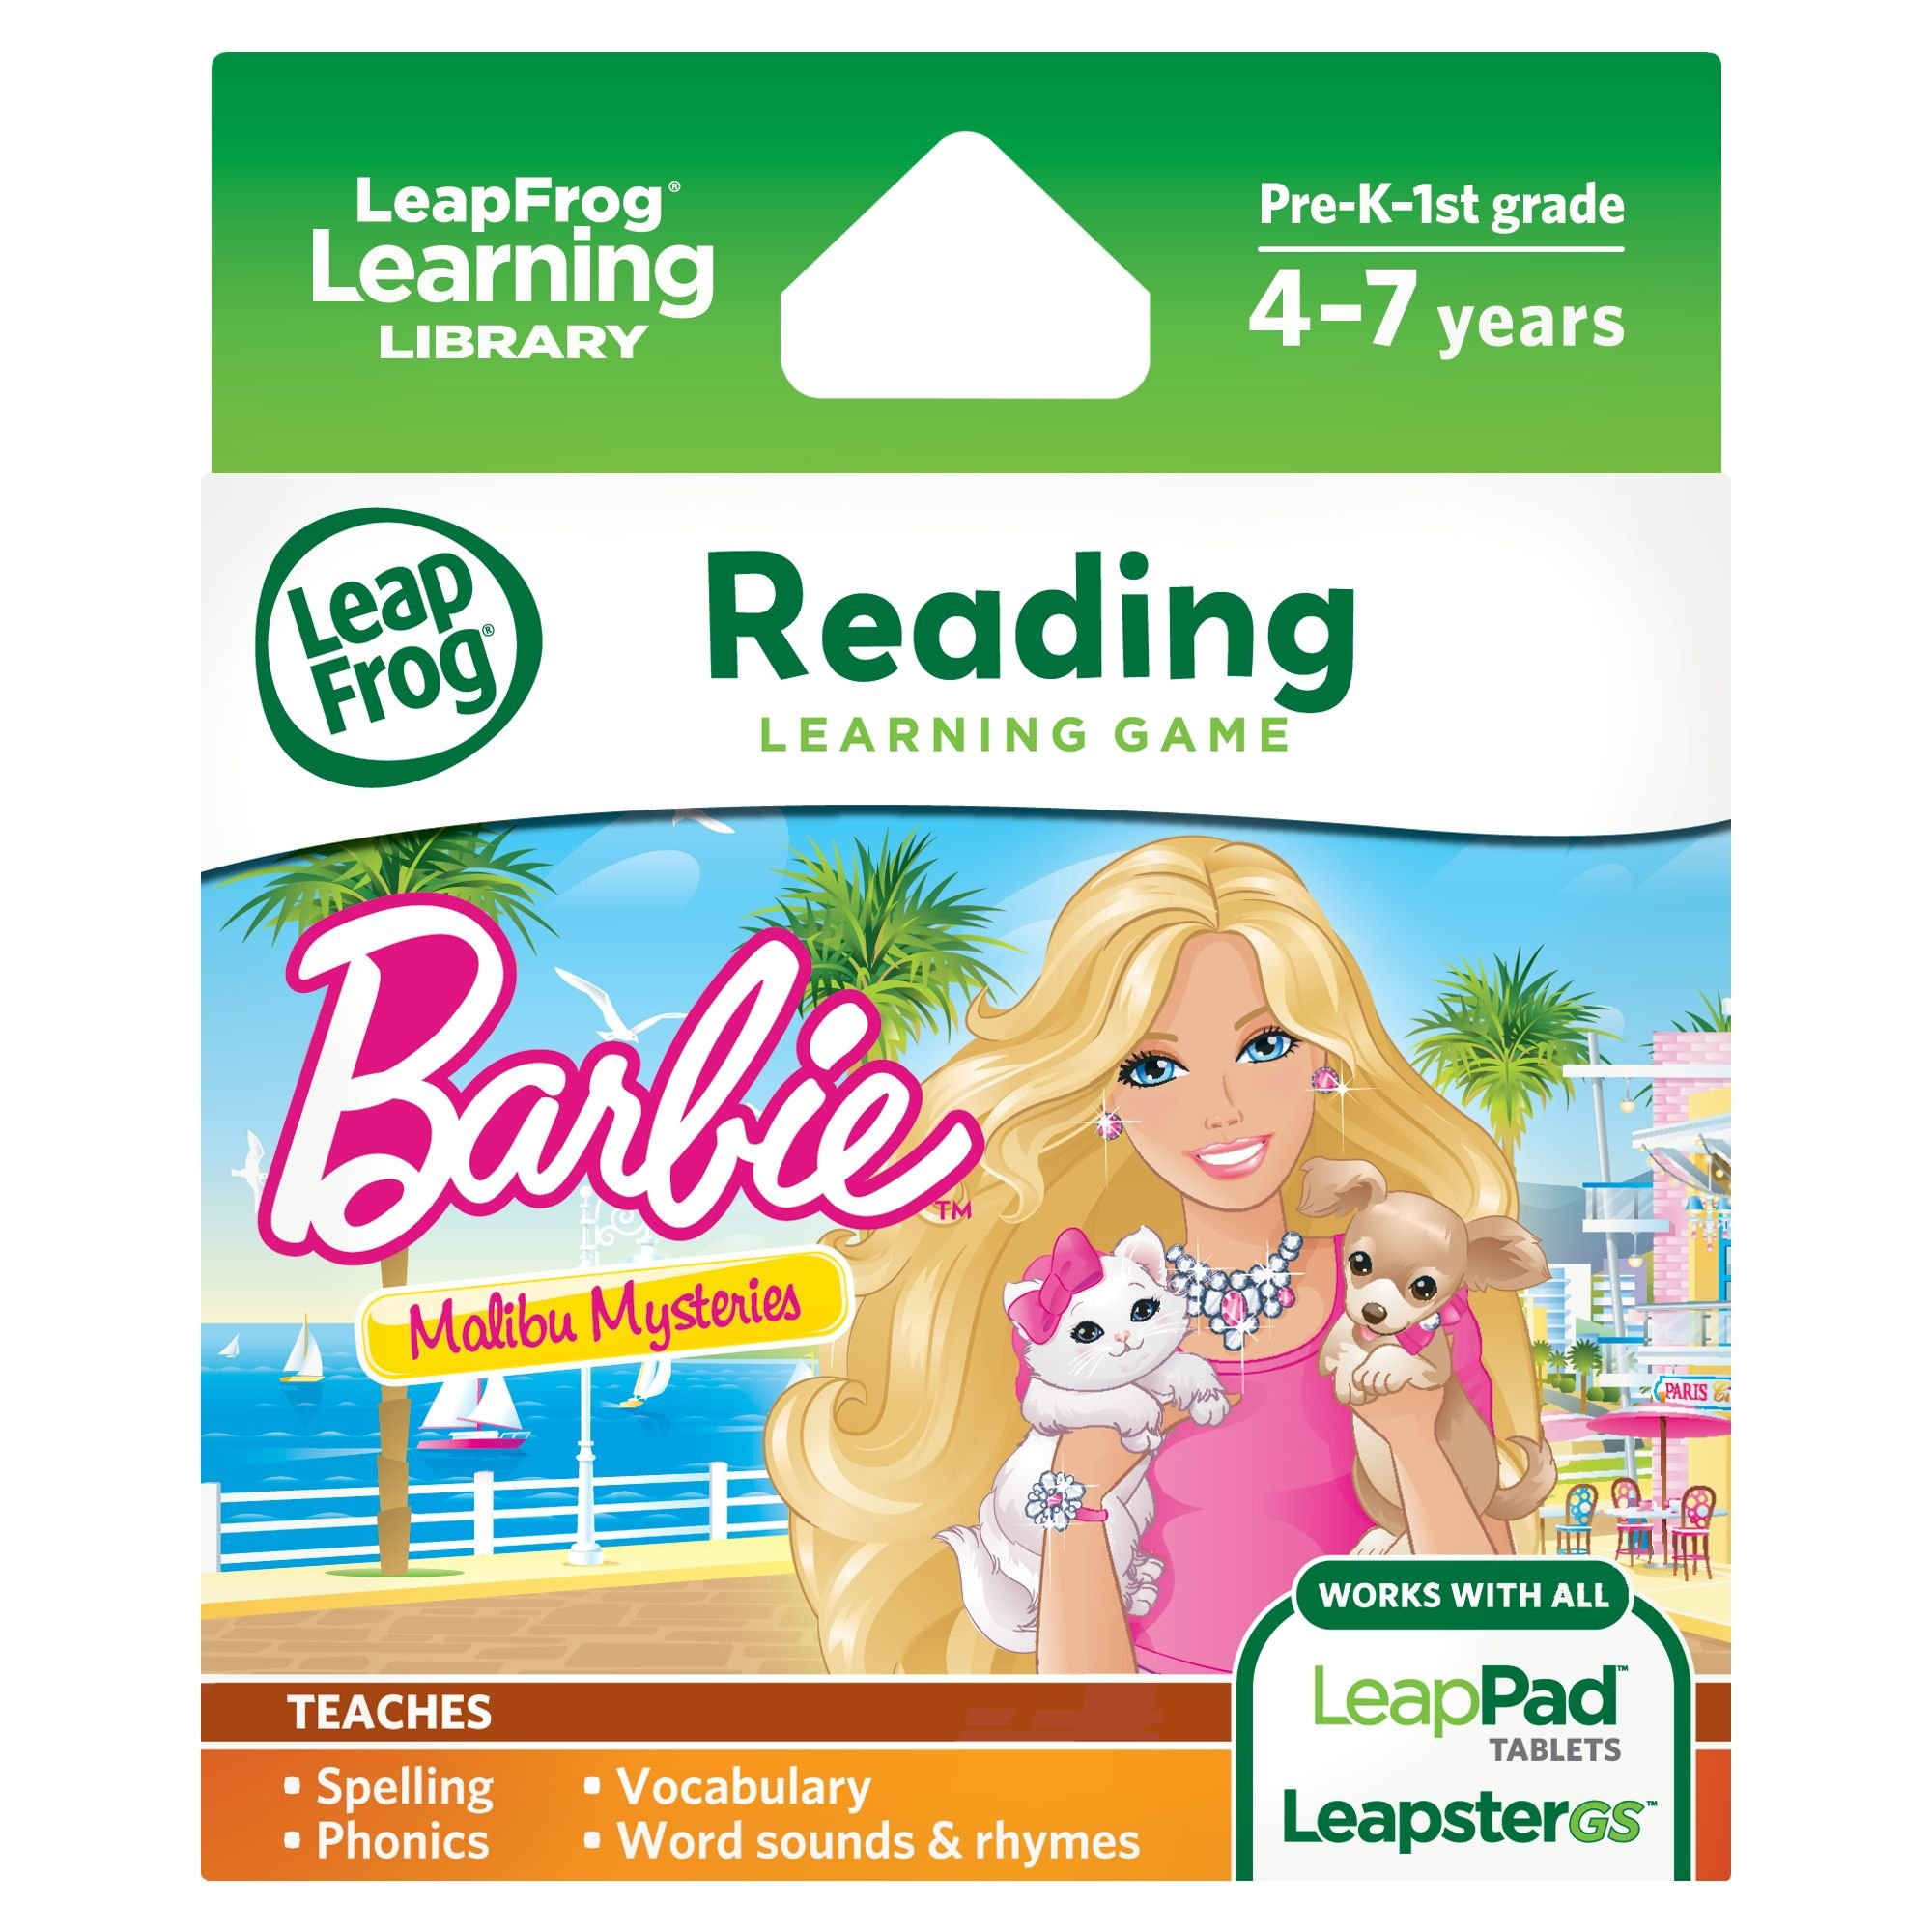 LeapFrog Learning Game: Barbie Malibu Mysteries (for LeapPad Tablets and LeapsterGS) by LeapFrog (Image #1)